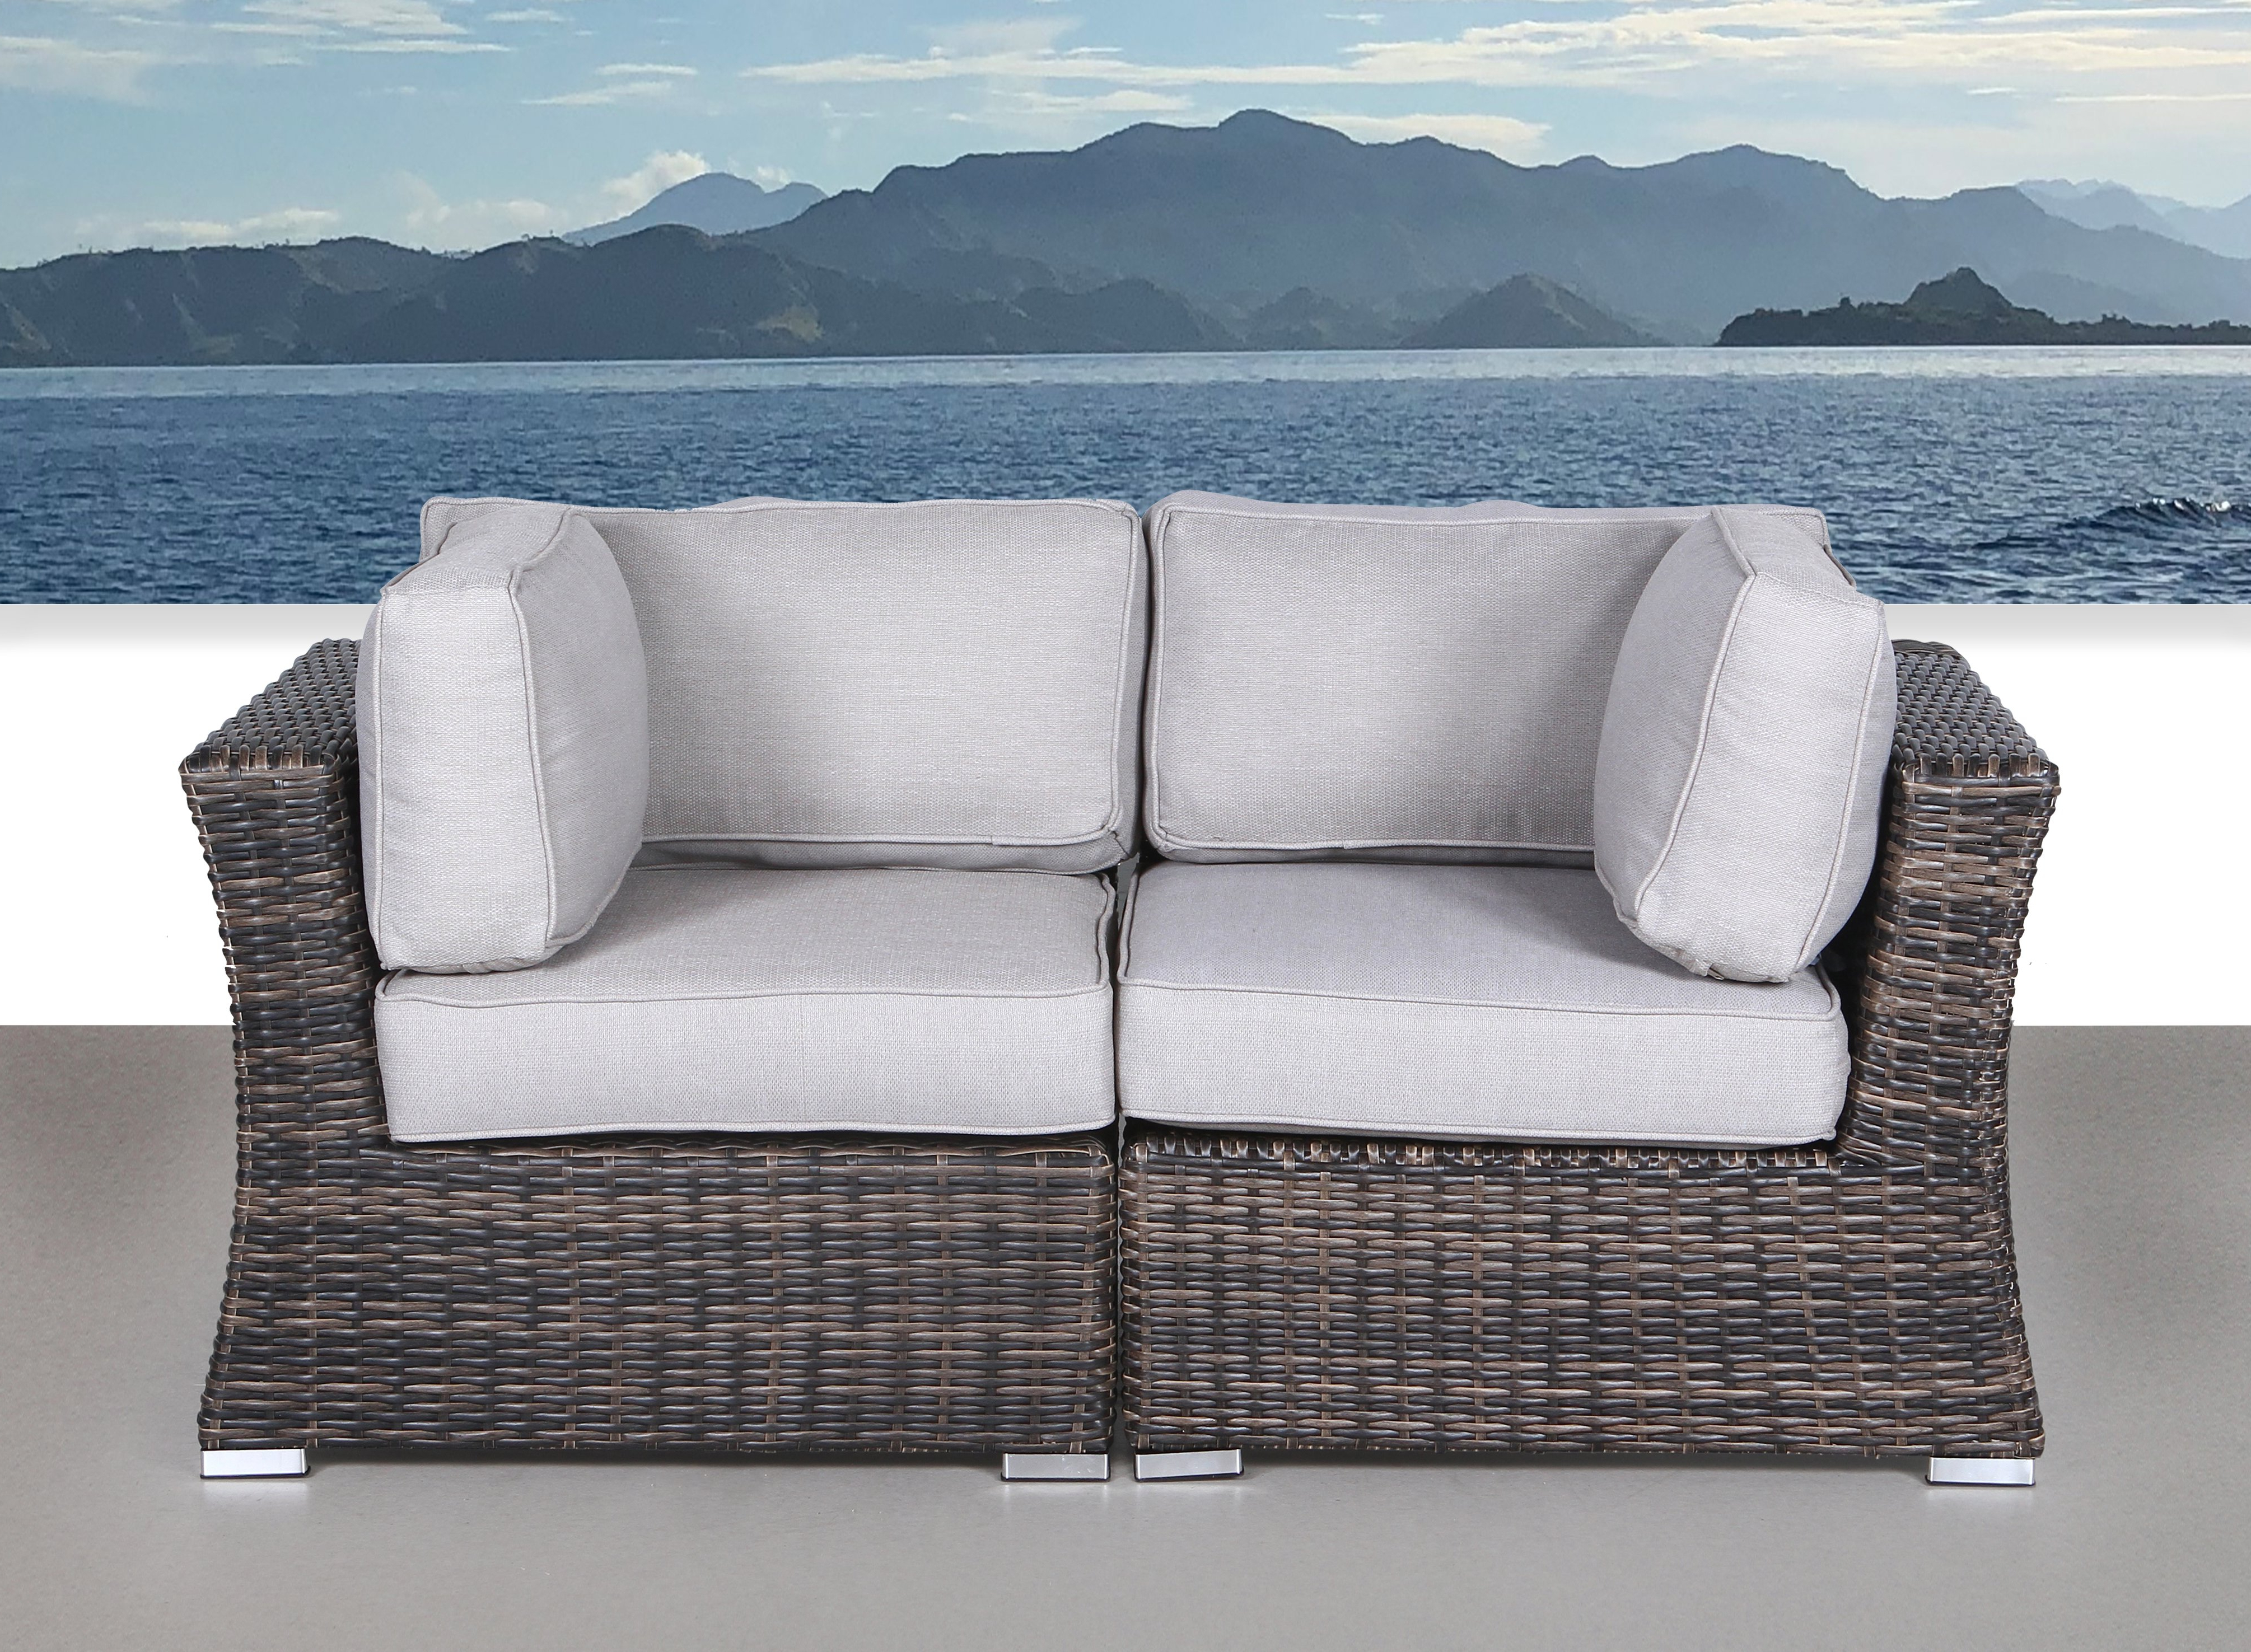 Most Recently Released Provencher Patio Loveseats With Cushions Within Huddleson Contemporary Loveseat With Cushion (View 7 of 20)